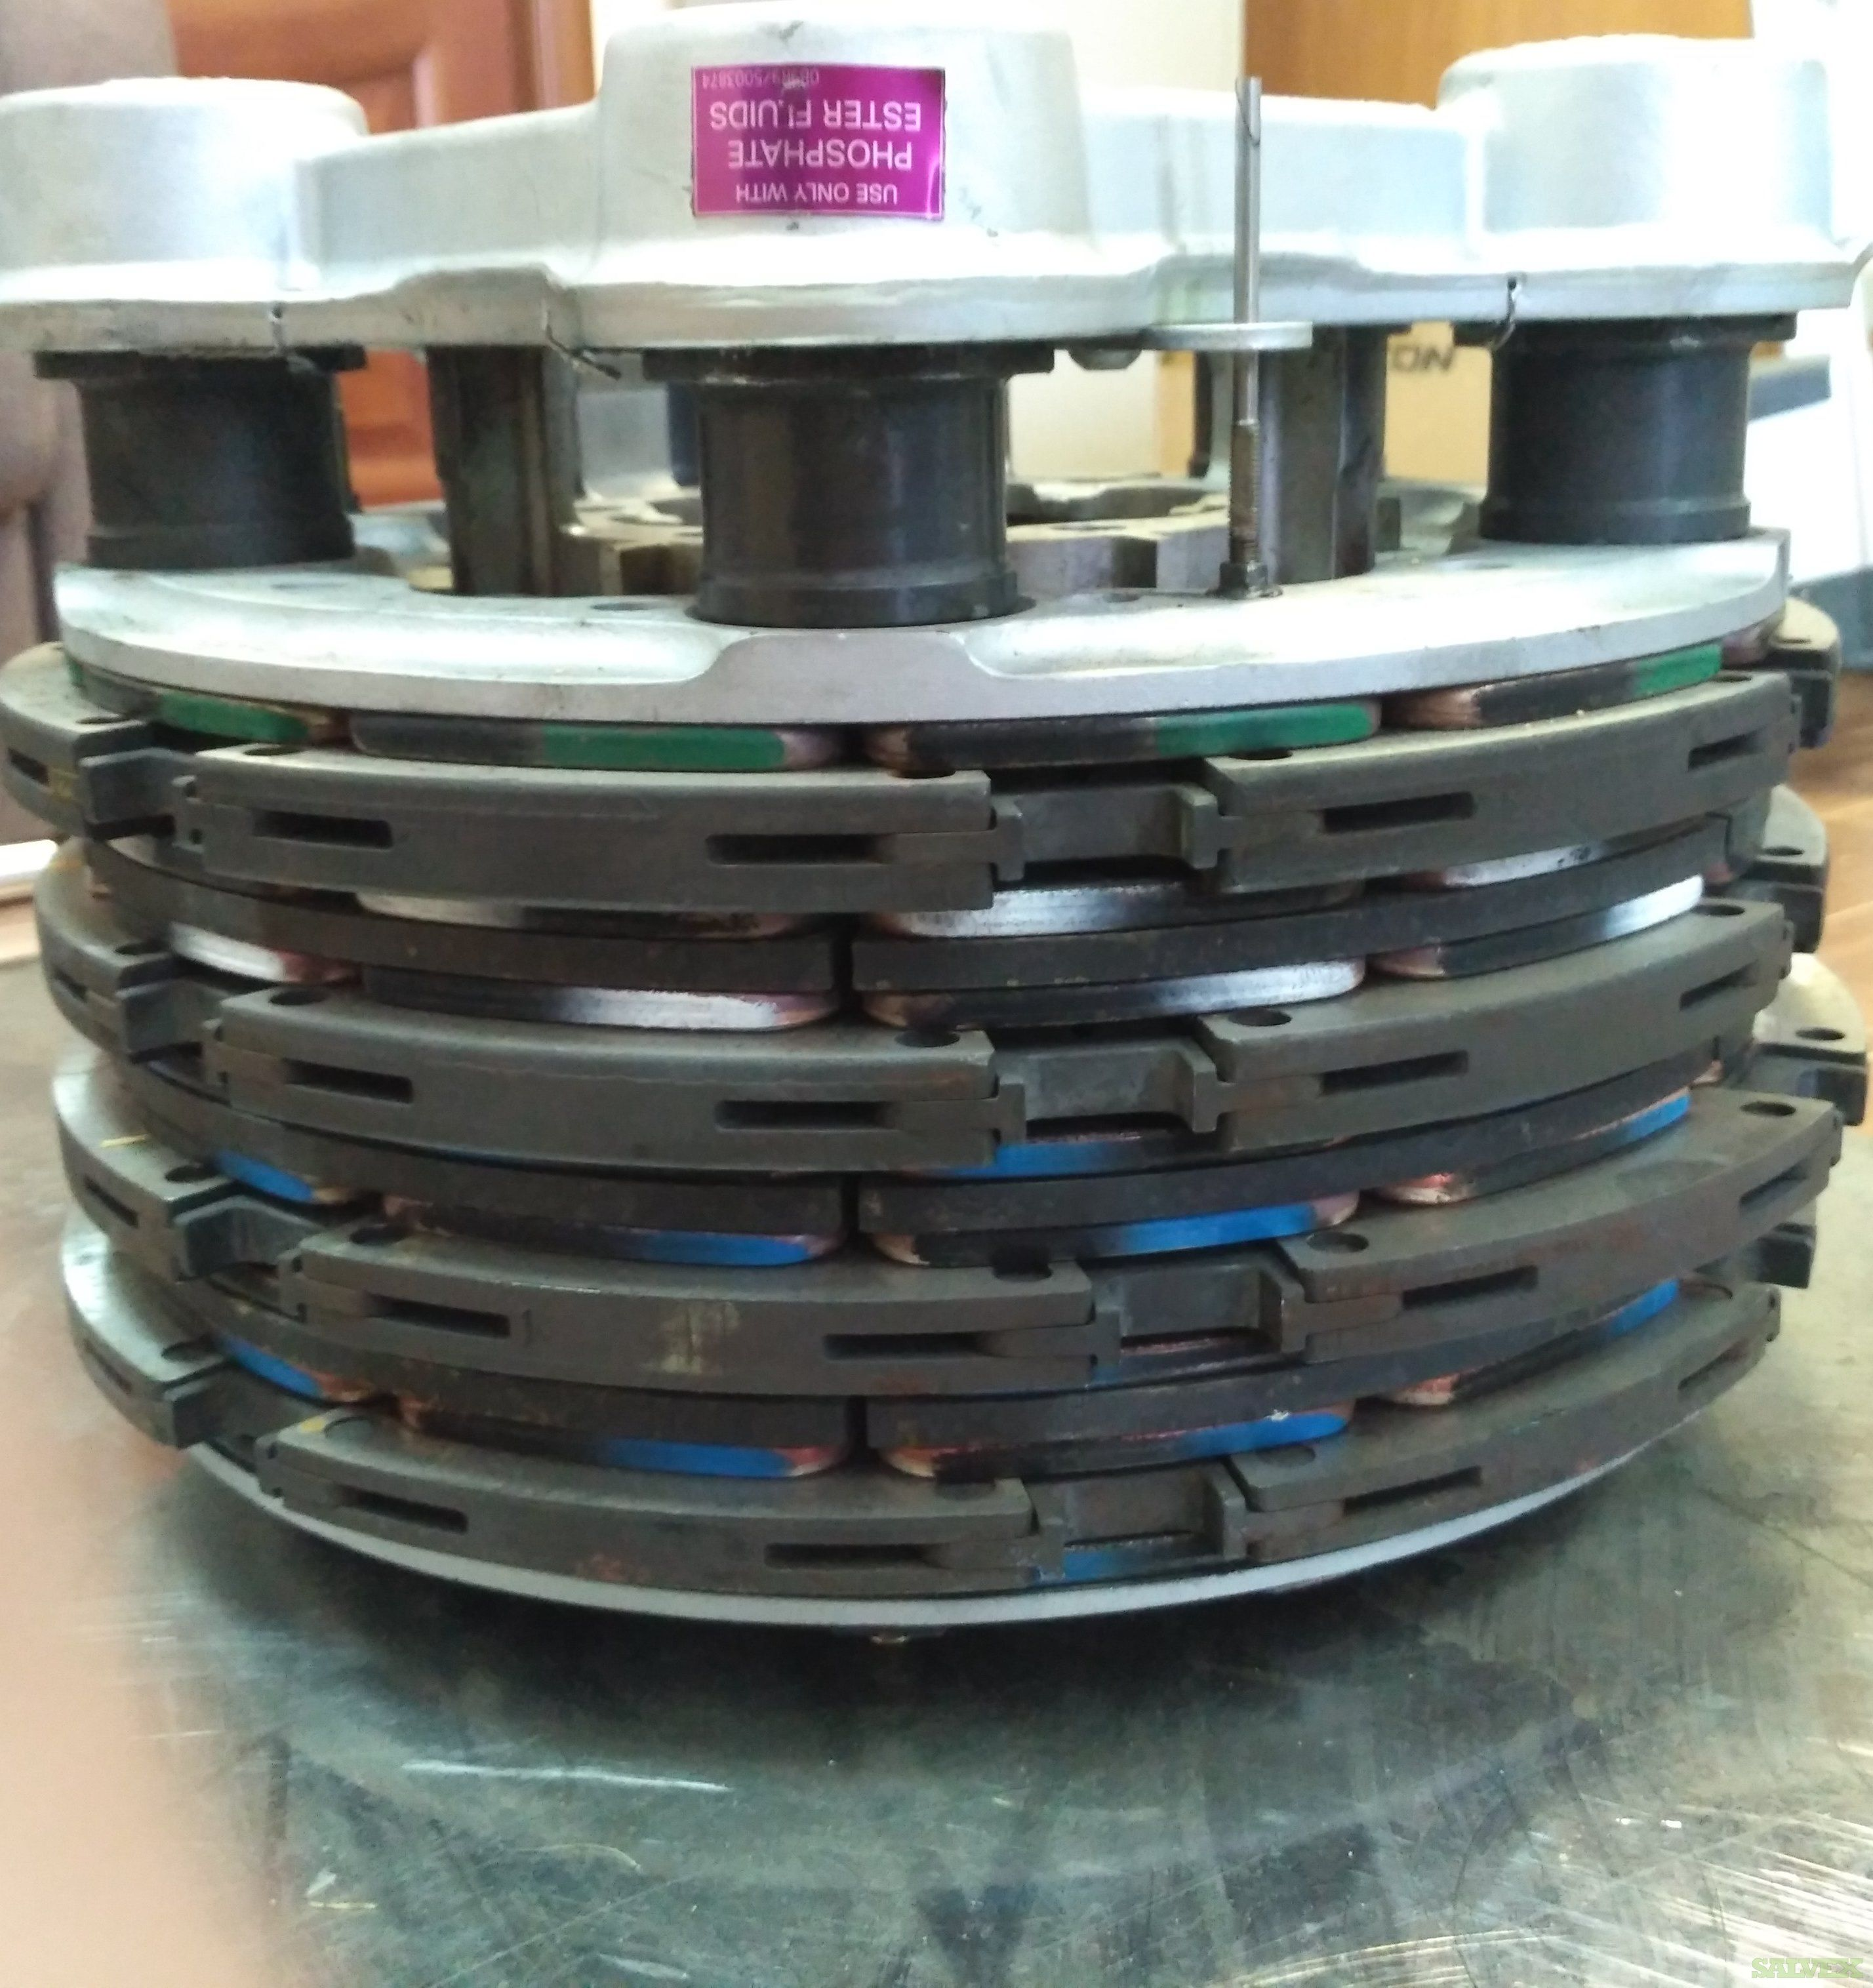 Brake Assy for  CRJ100/200, Boeing 757, Boeing 767 & Boeing 737NG Aircraft (9 Units)